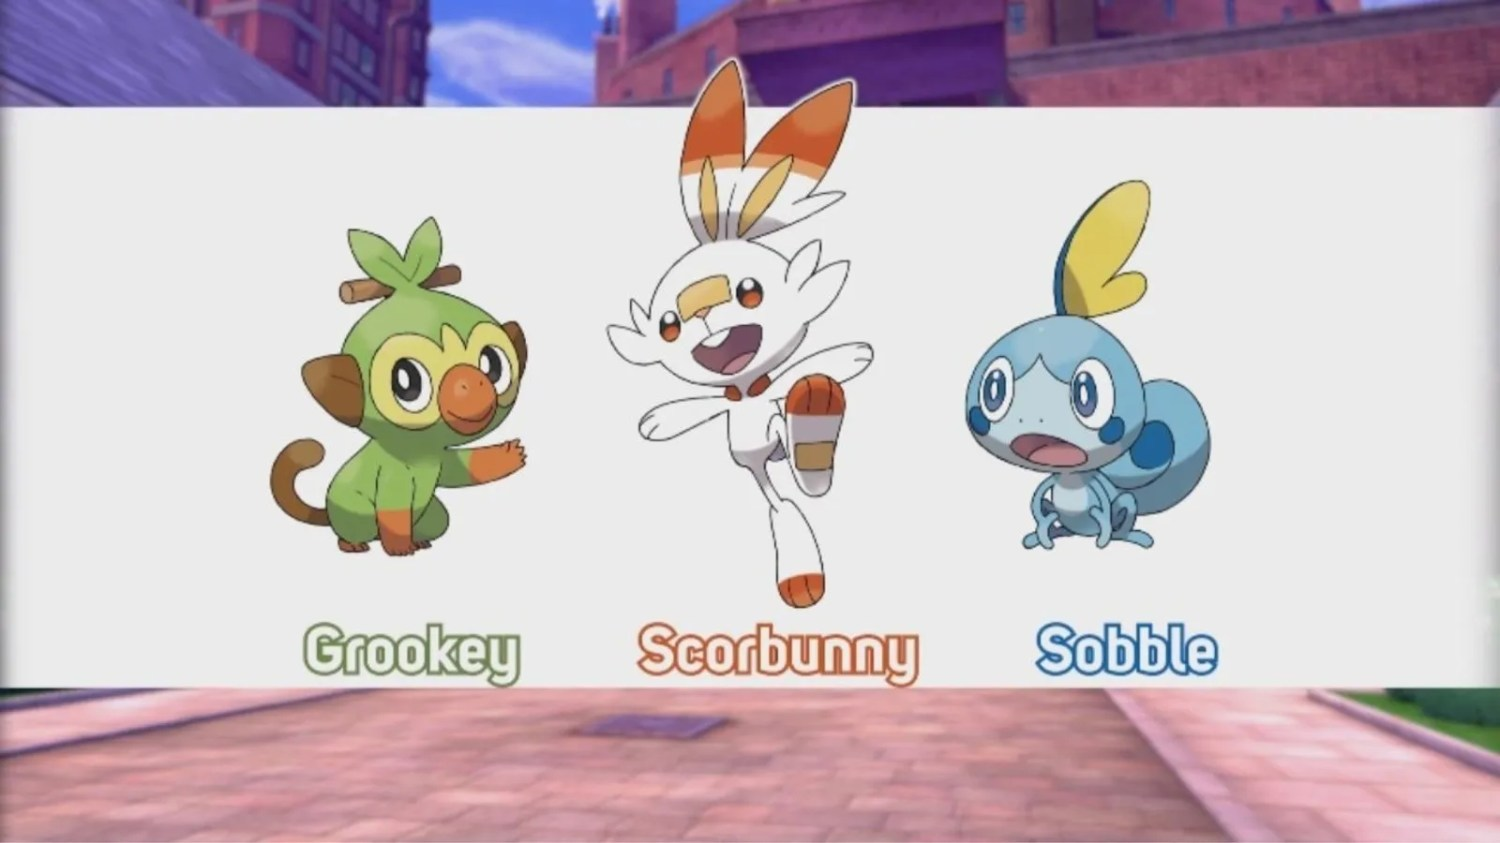 Pokemon Sword And Shield 10 Things We Already Know About The Game